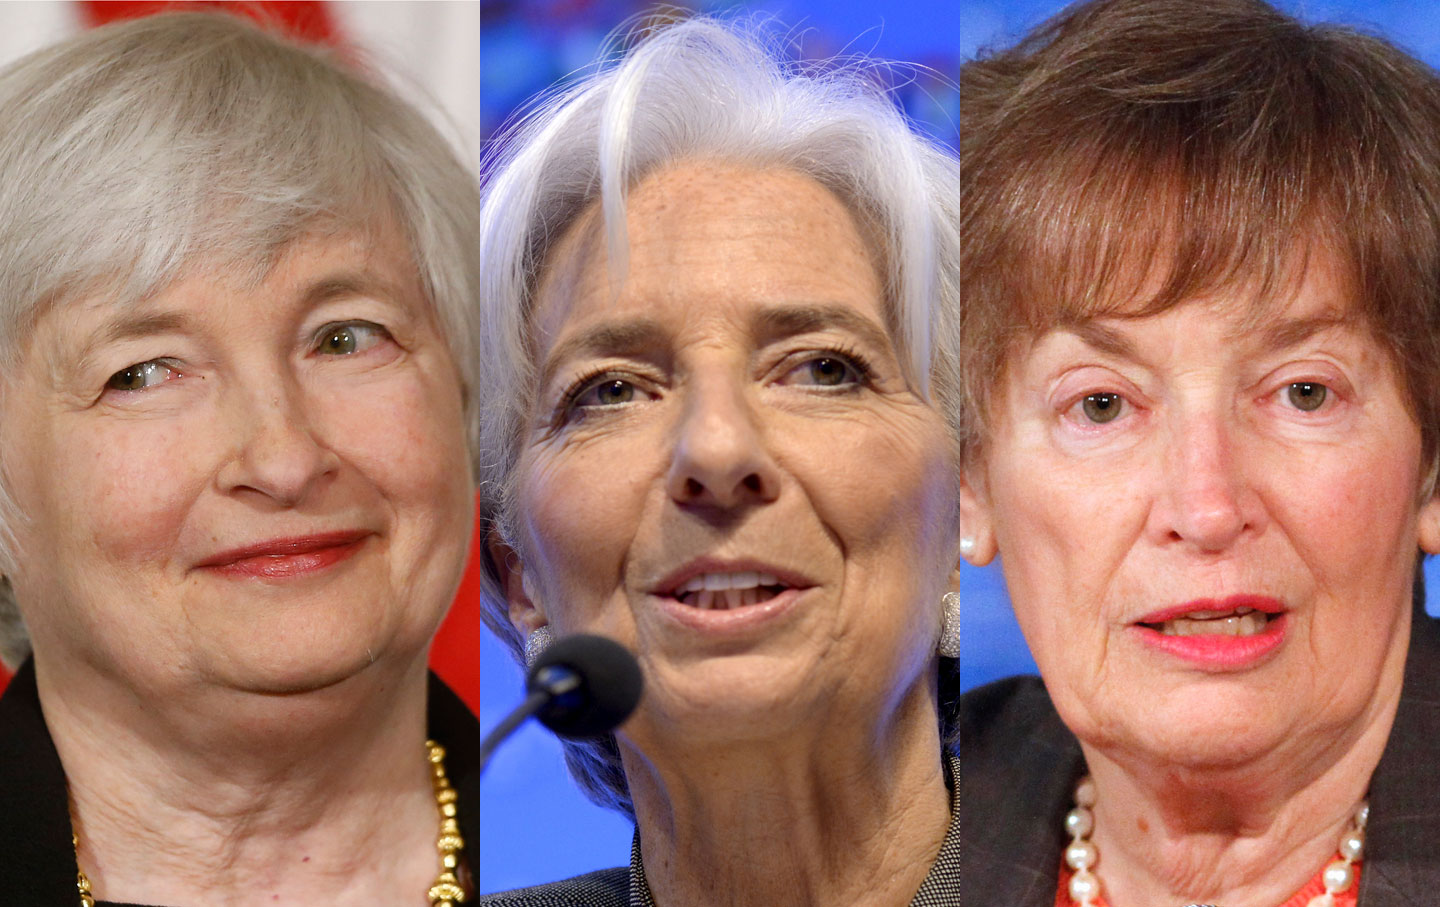 What-Would-Happen-if-Women-Were-In-Charge-of-the-Global-Economy